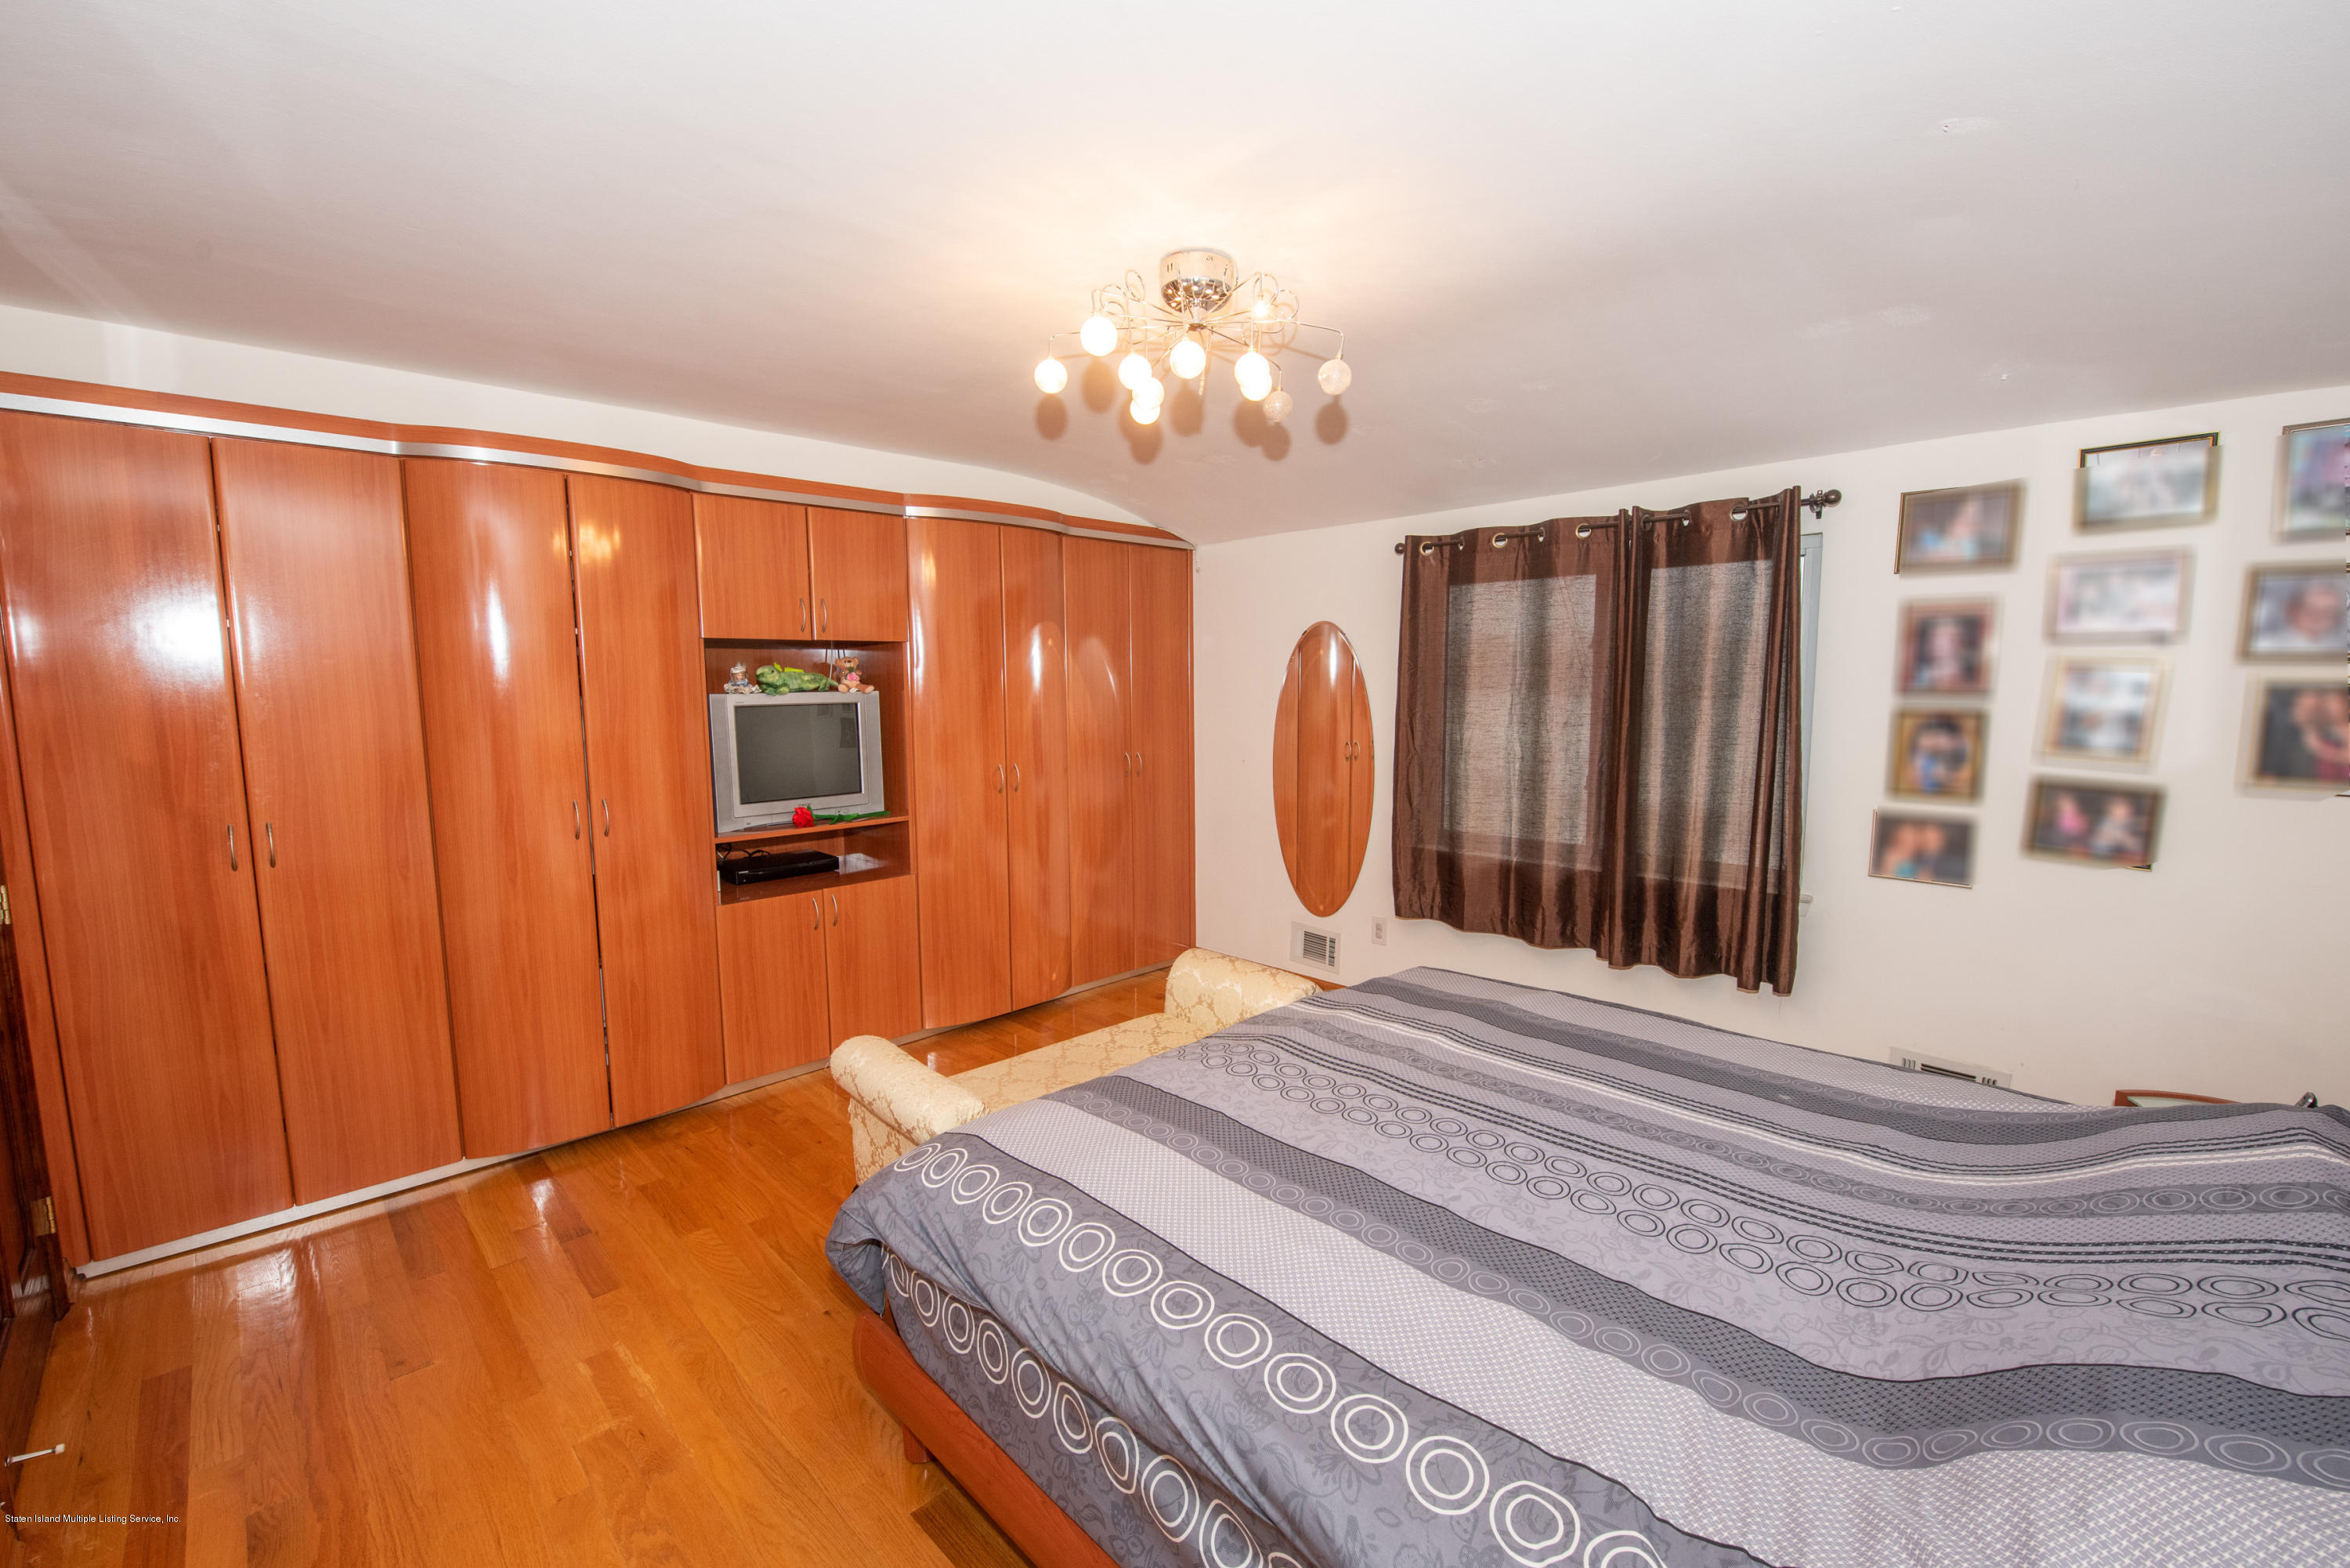 Single Family - Semi-Attached 76 Mcveigh Avenue  Staten Island, NY 10314, MLS-1133370-20